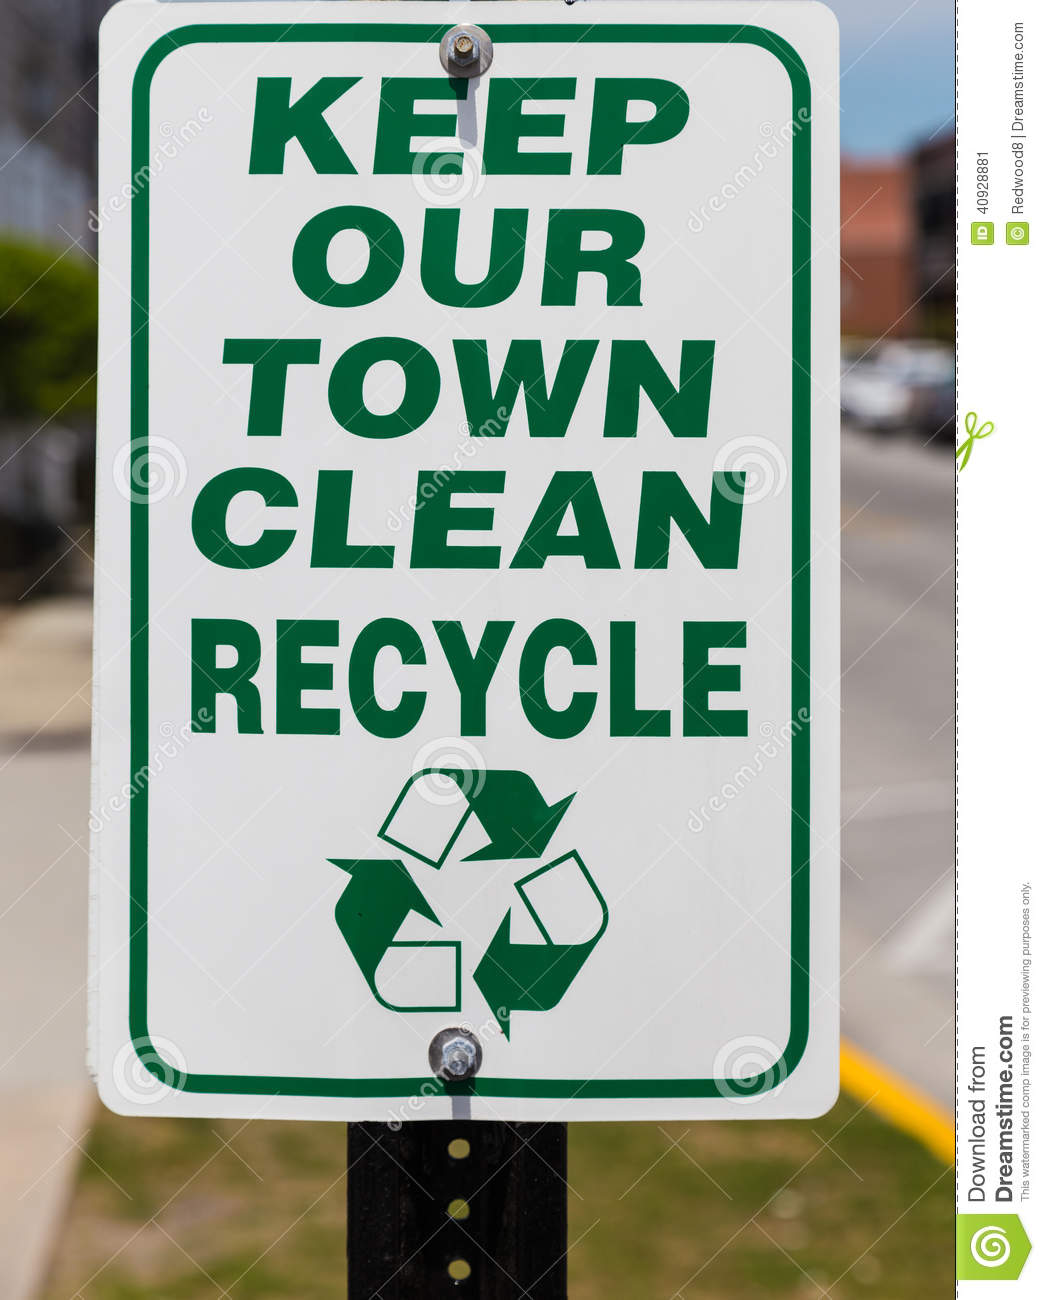 How to keep our town clean